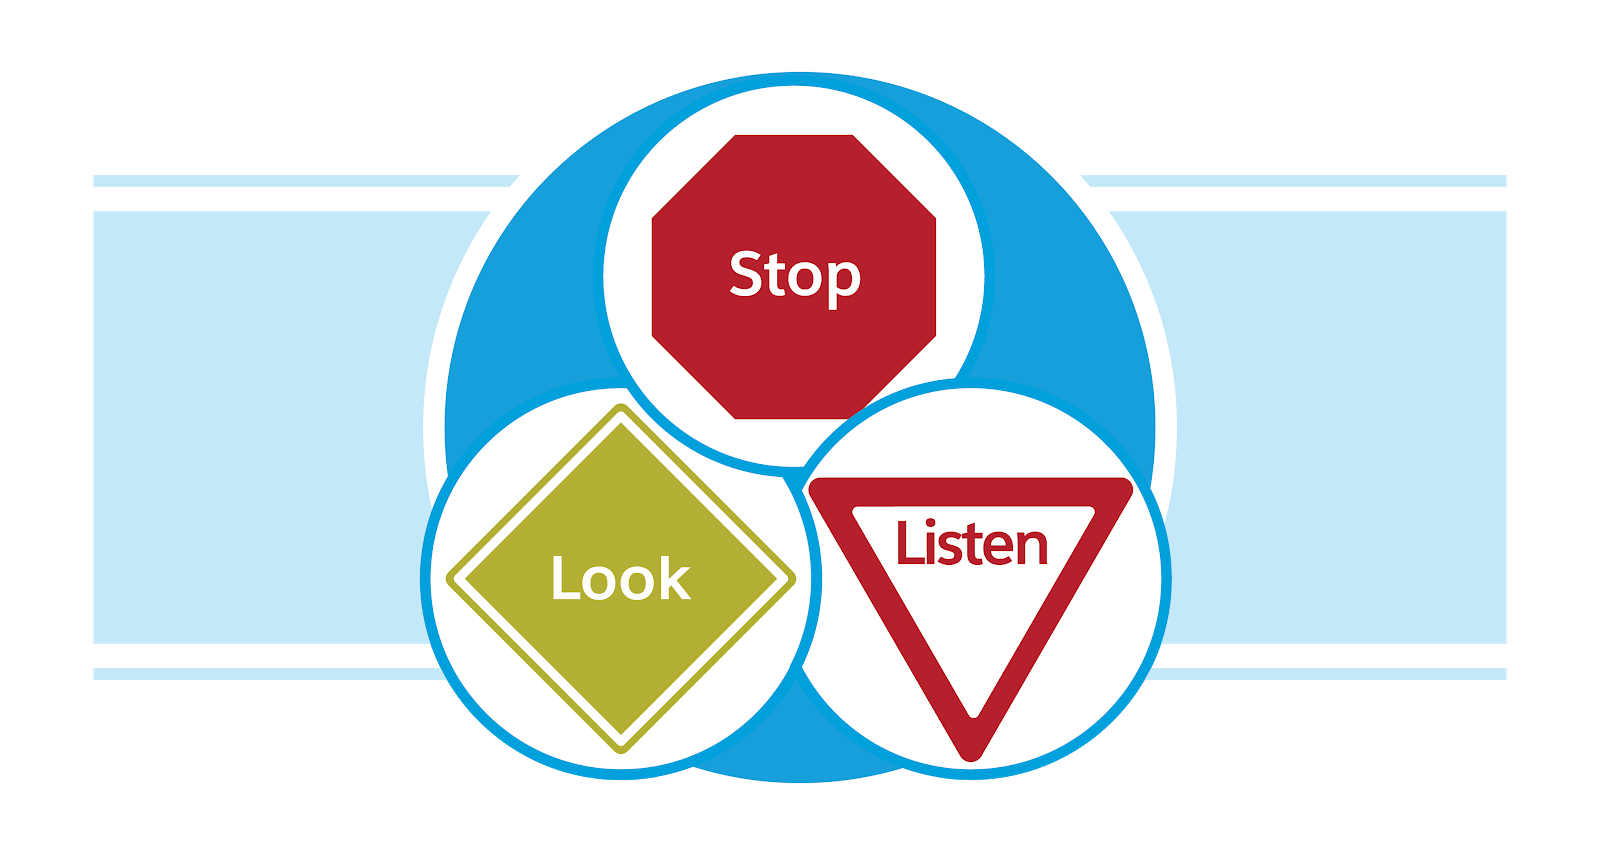 """A sign that reads """"Stop,"""" a sign that reads """"Look,"""" and a sign that reads """"Listen"""""""